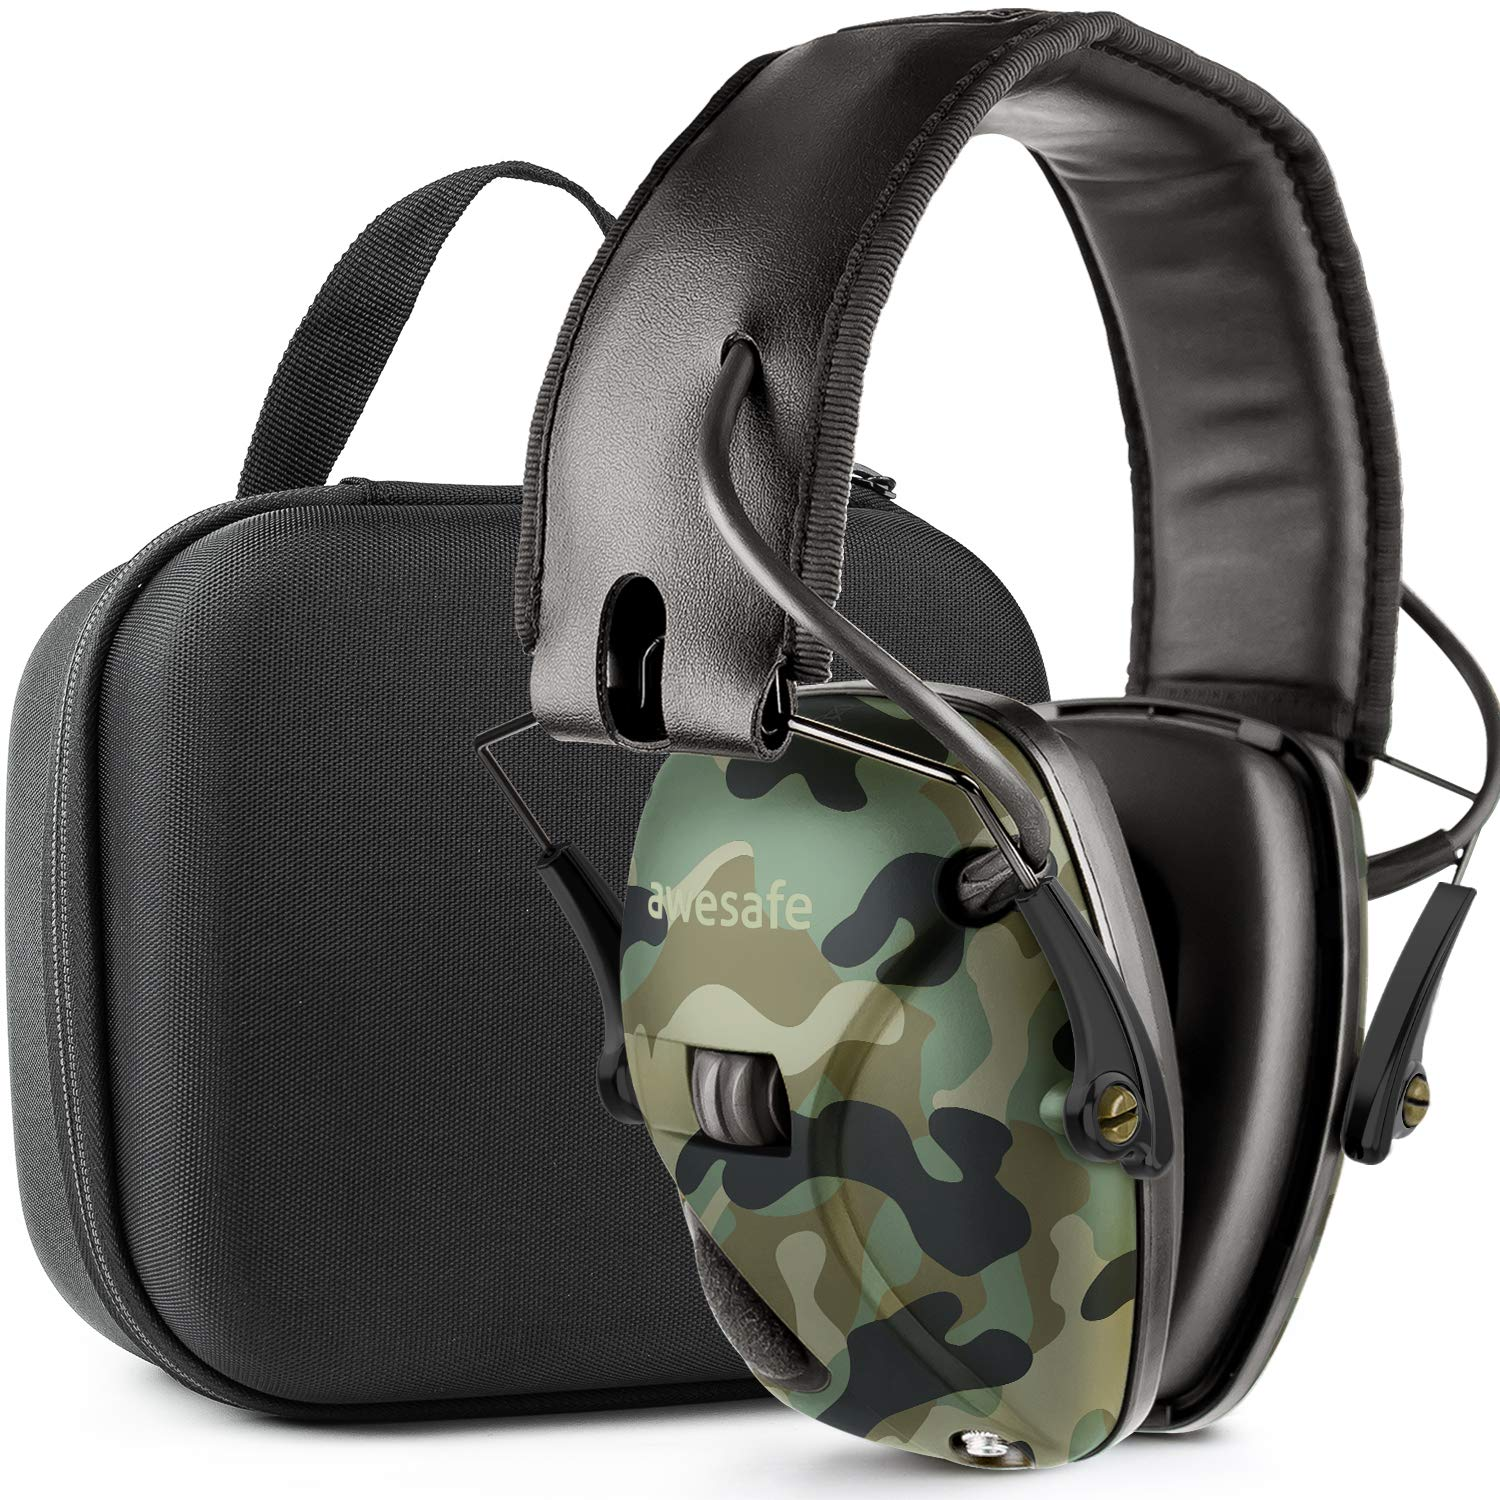 Awesafe Ear Protection for Shooting Range,Electronic Hearing Protection for Impact Sport [with Travel Storage Carrying Case Bag],Safety Ear Muffs, NRR 22, Ideal for Shooters and Hunting,Camo by awesafe